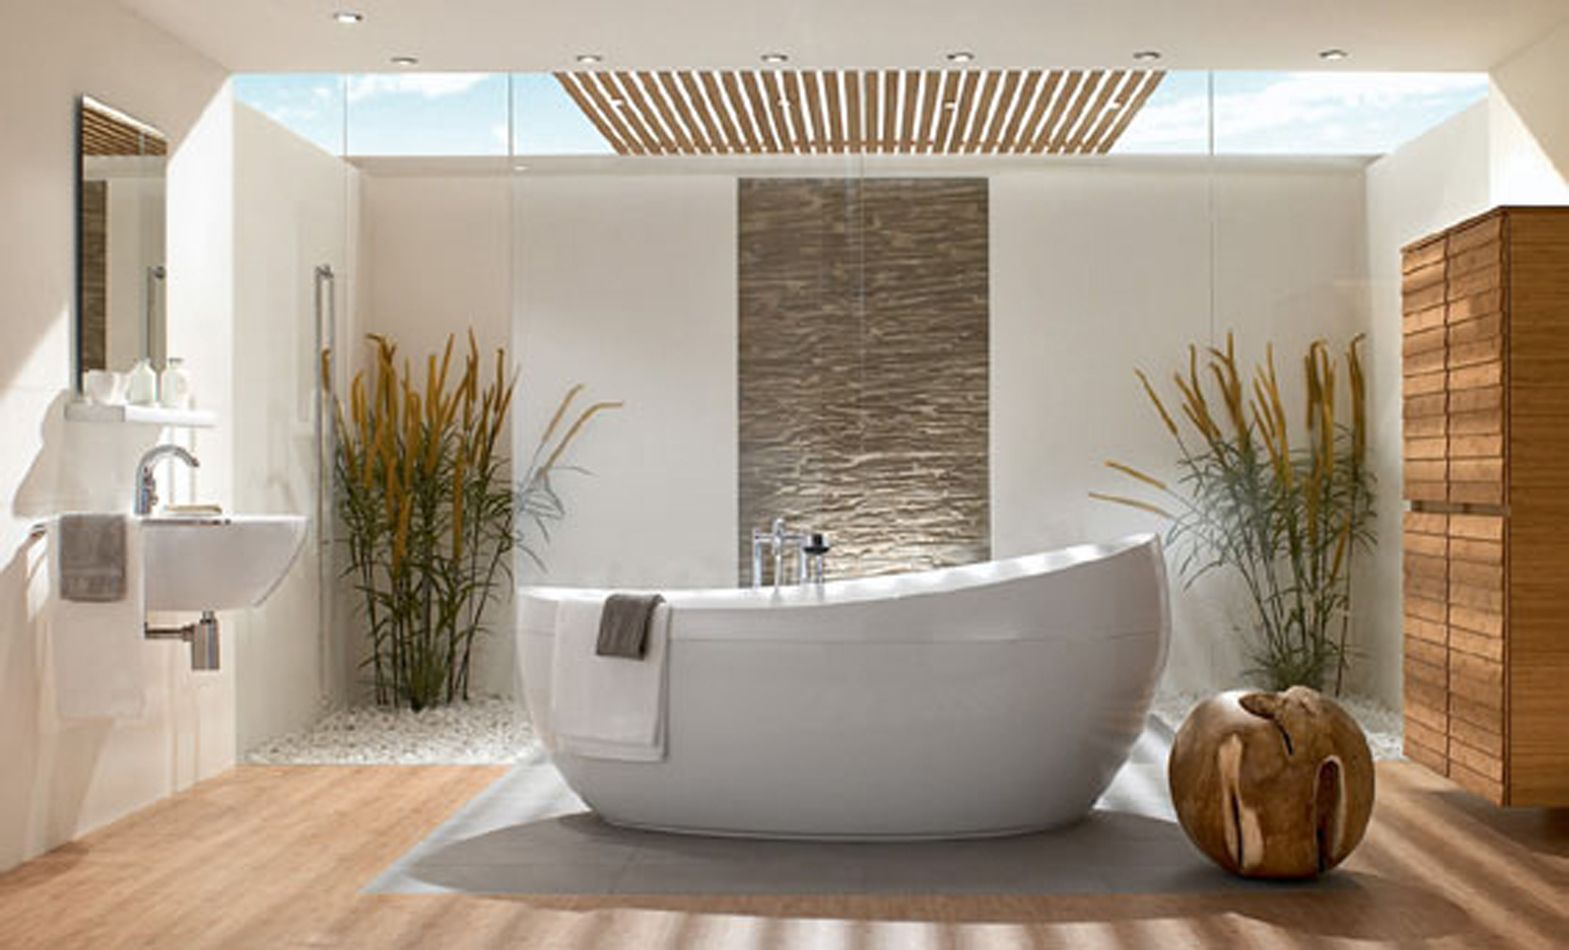 Bathroom Inspiration Inspirations With Unique Batthubs Listed In: